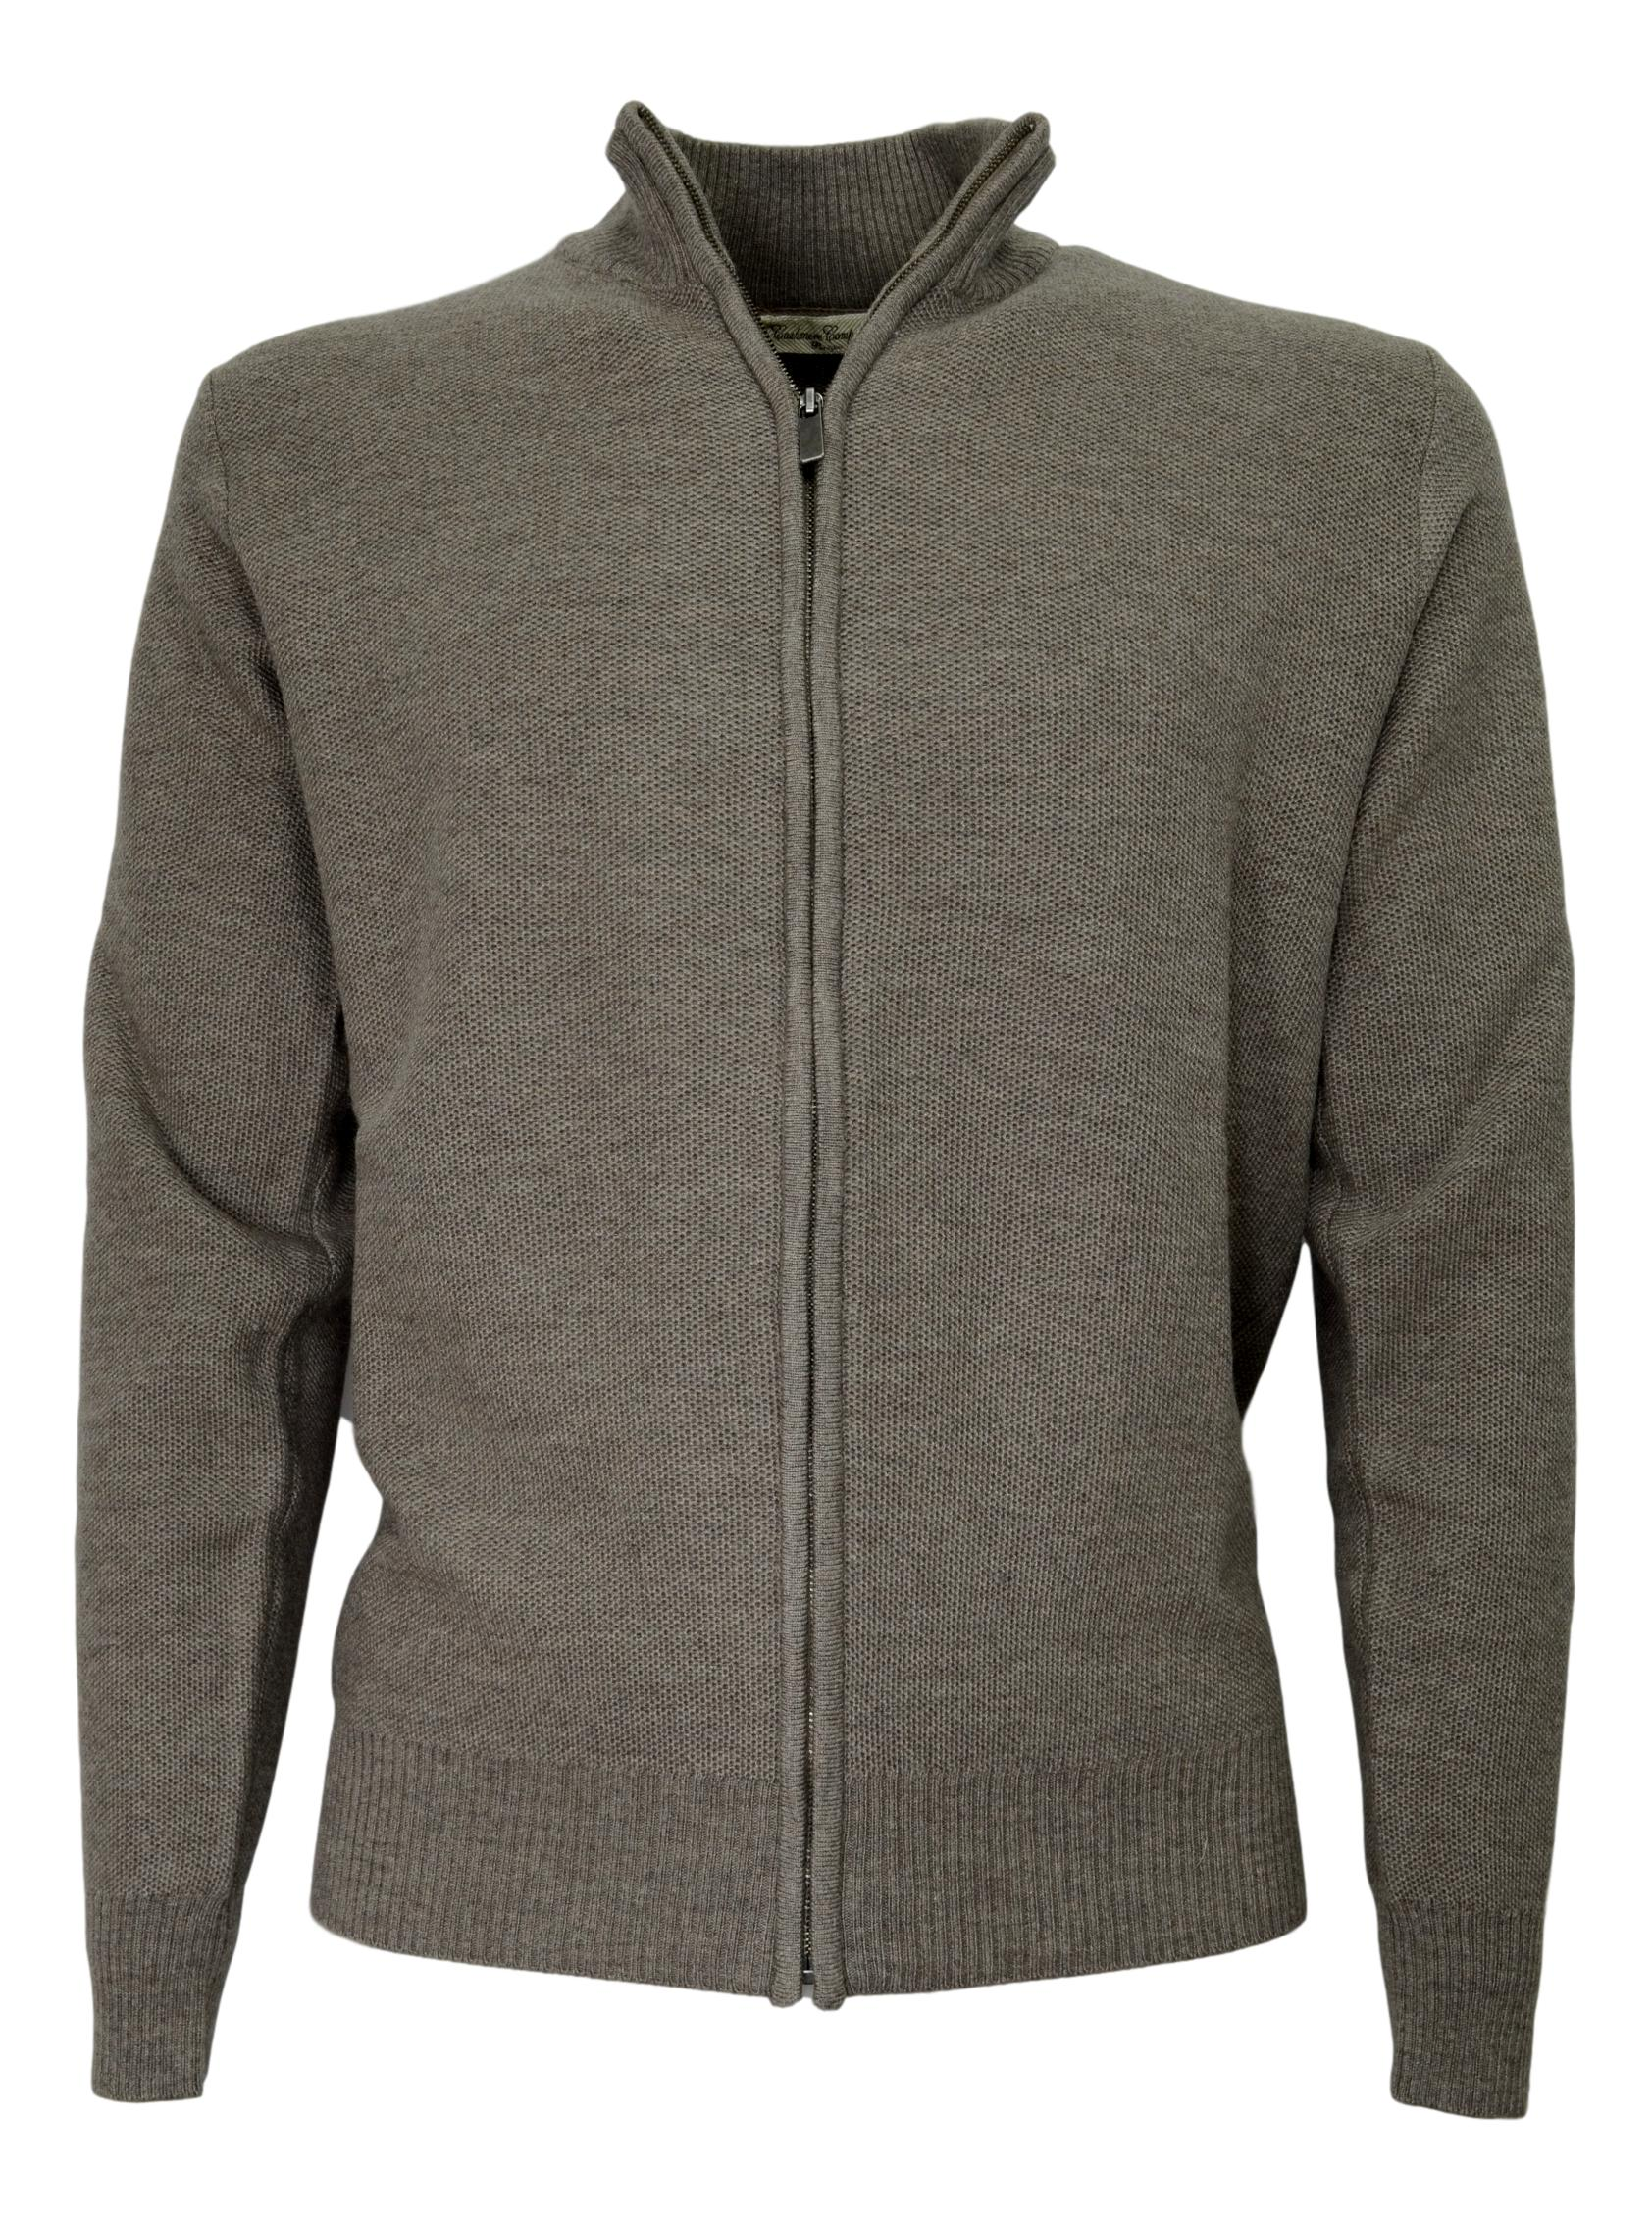 CASHMERE COMPANY CARDIGAN ZIP 415 MAD MADE IN ITALY CASHMERE E LANA